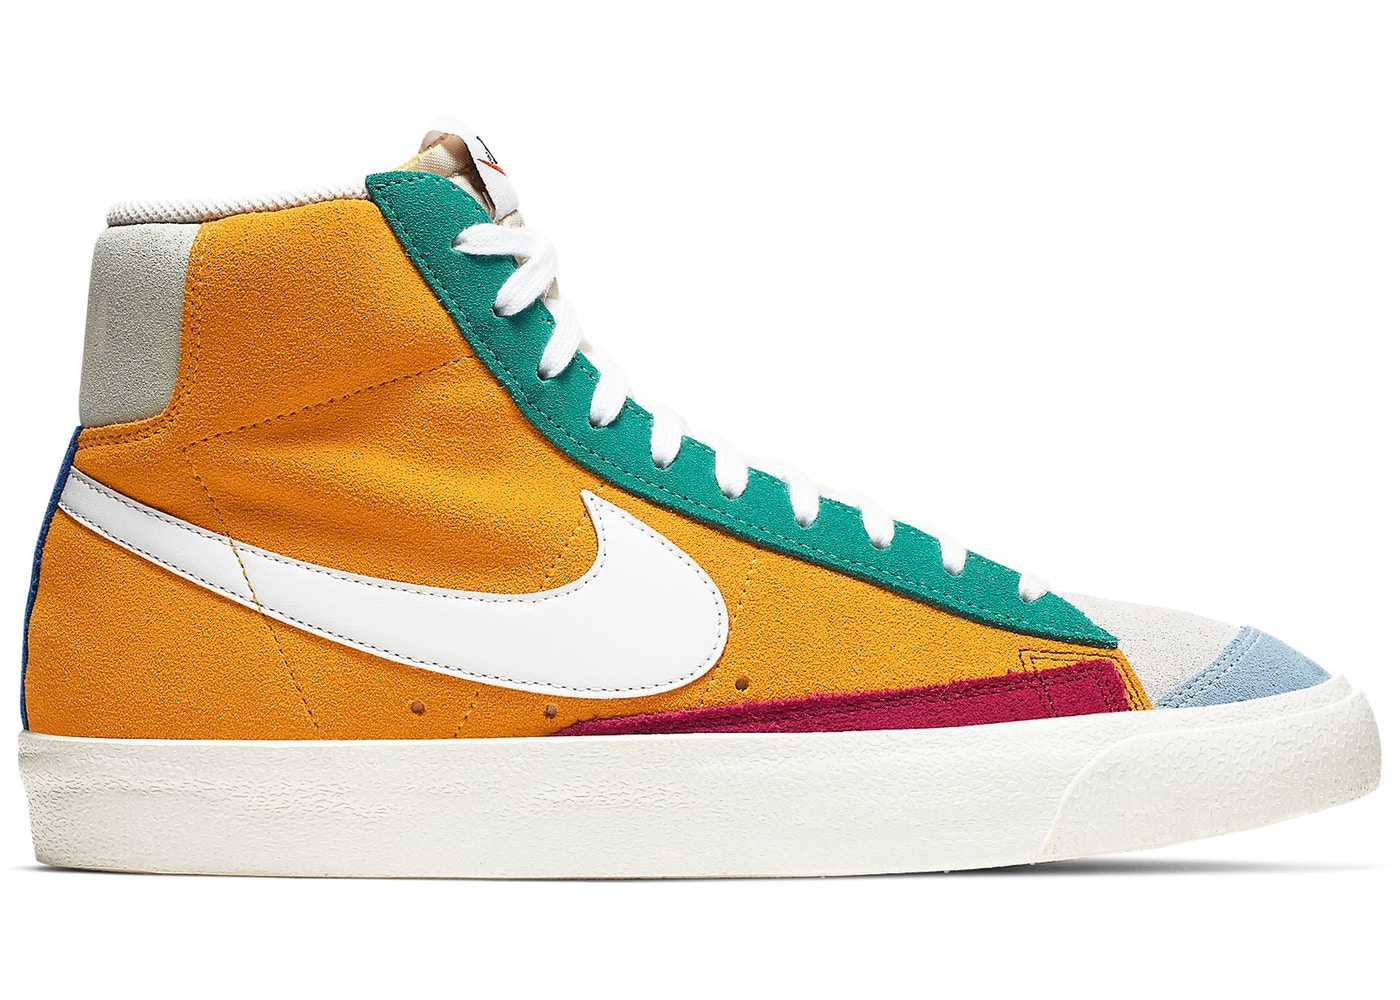 Nike Blazer Mid 77 Vintage Multi-Color